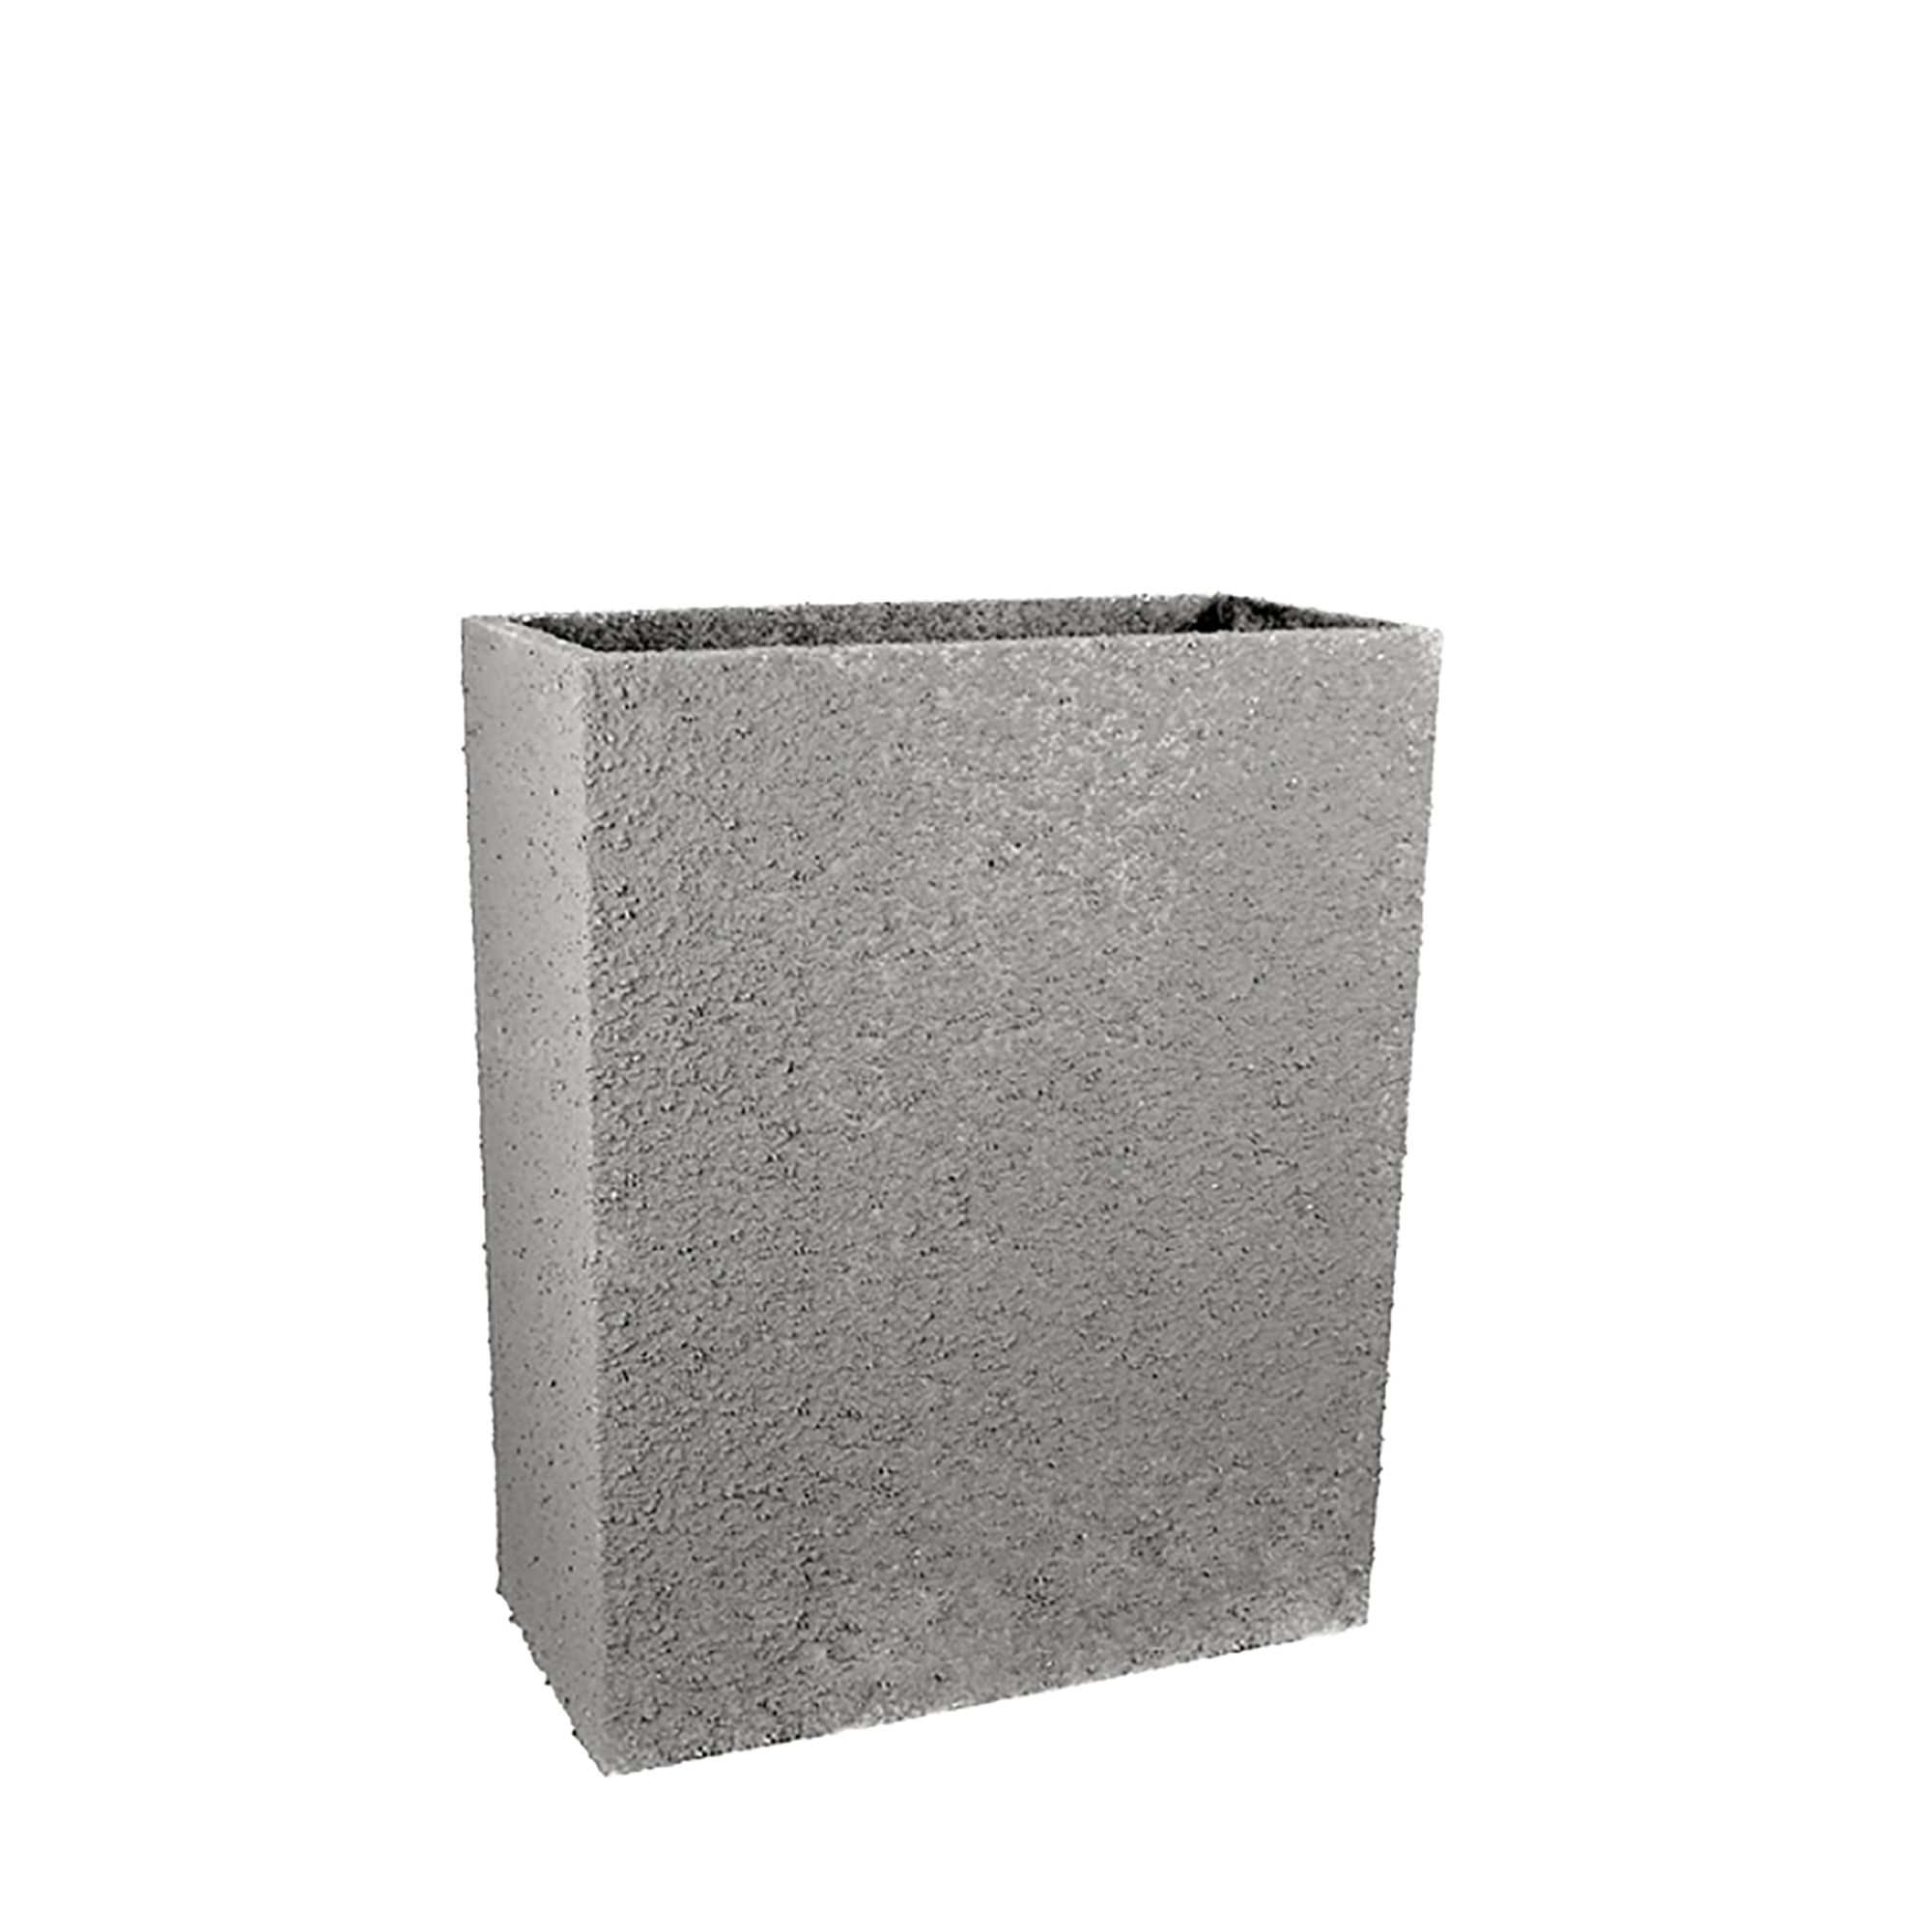 in tall rectangle fiberclay outdoor planter pot by le present  -   in tall rectangle fiberclay outdoor patio planter pot available incream grey or anthracite